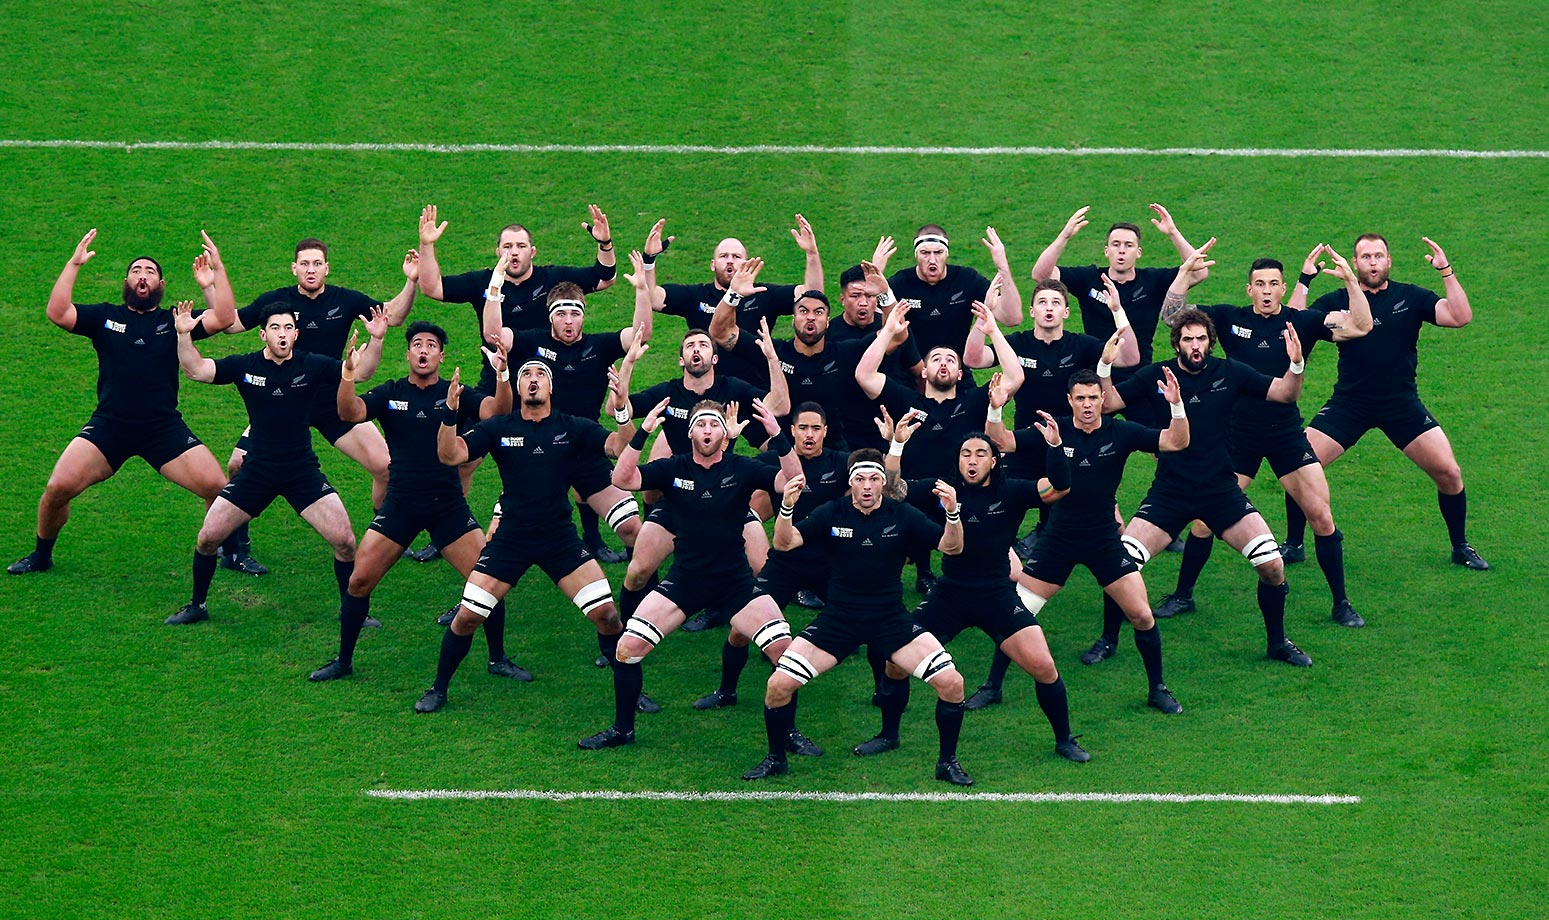 The New Zealand team performs its pre-match Haka during a 2015 Rugby World Cup semifinal match against South Africa.